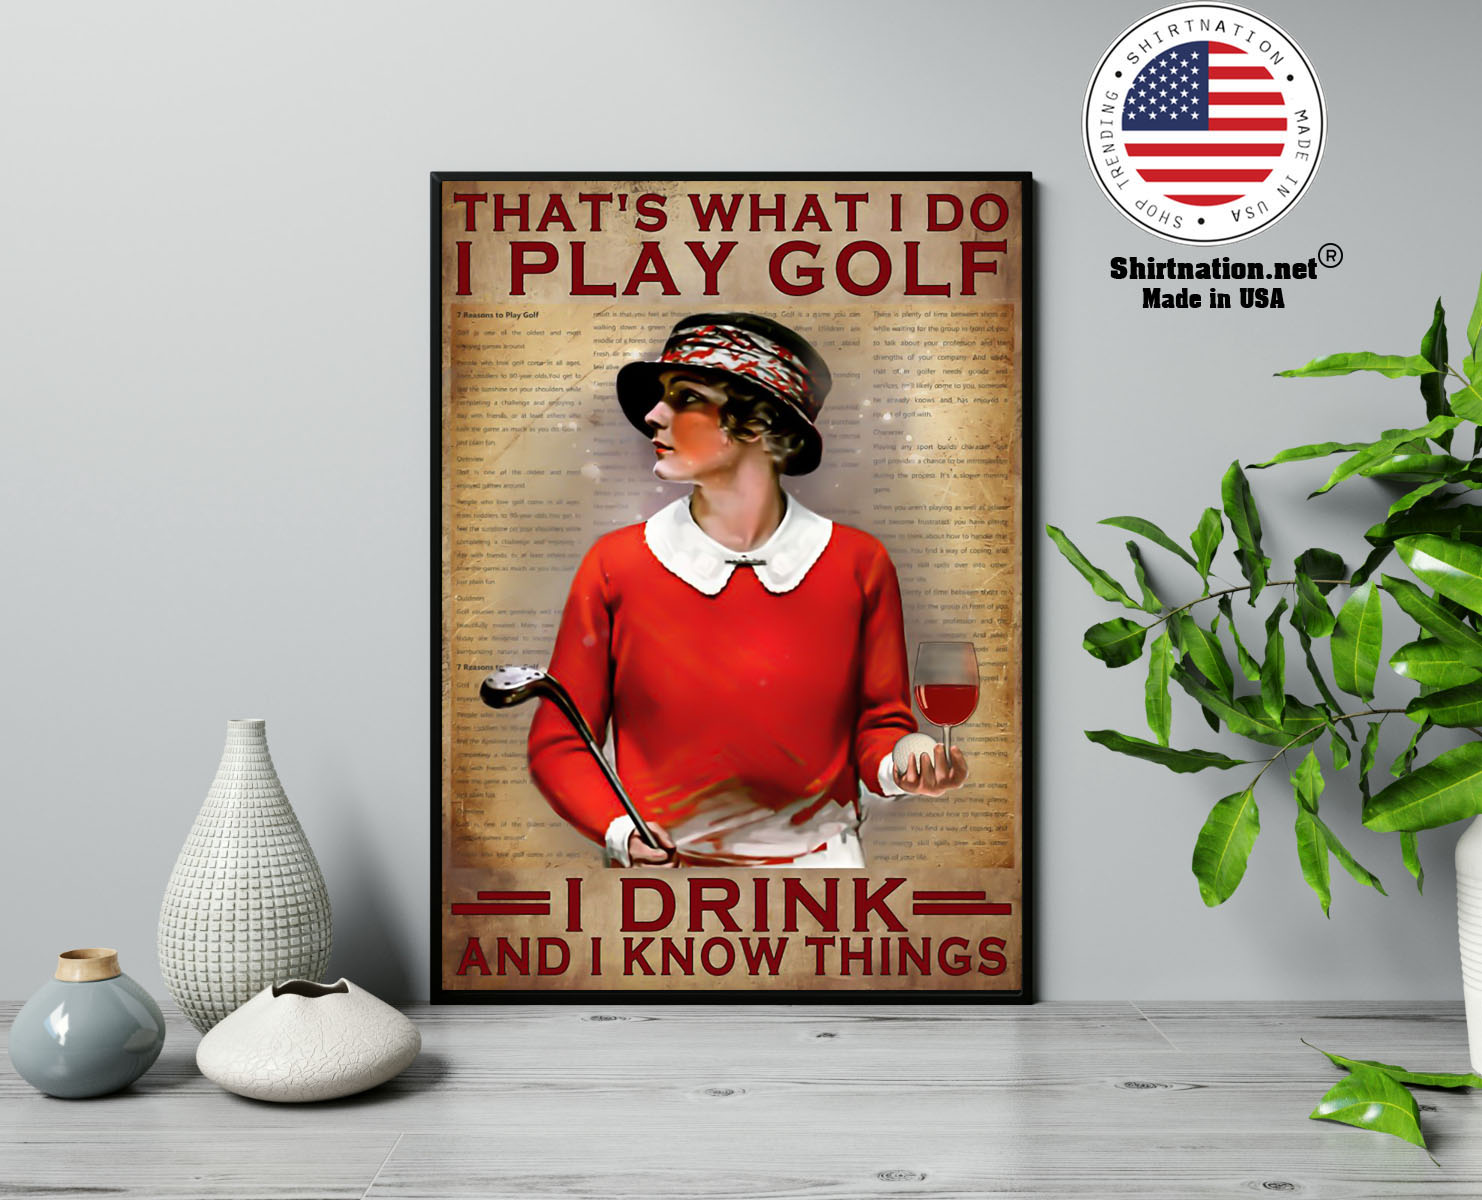 Thats what I do I play golf I drink and I know things poster 13